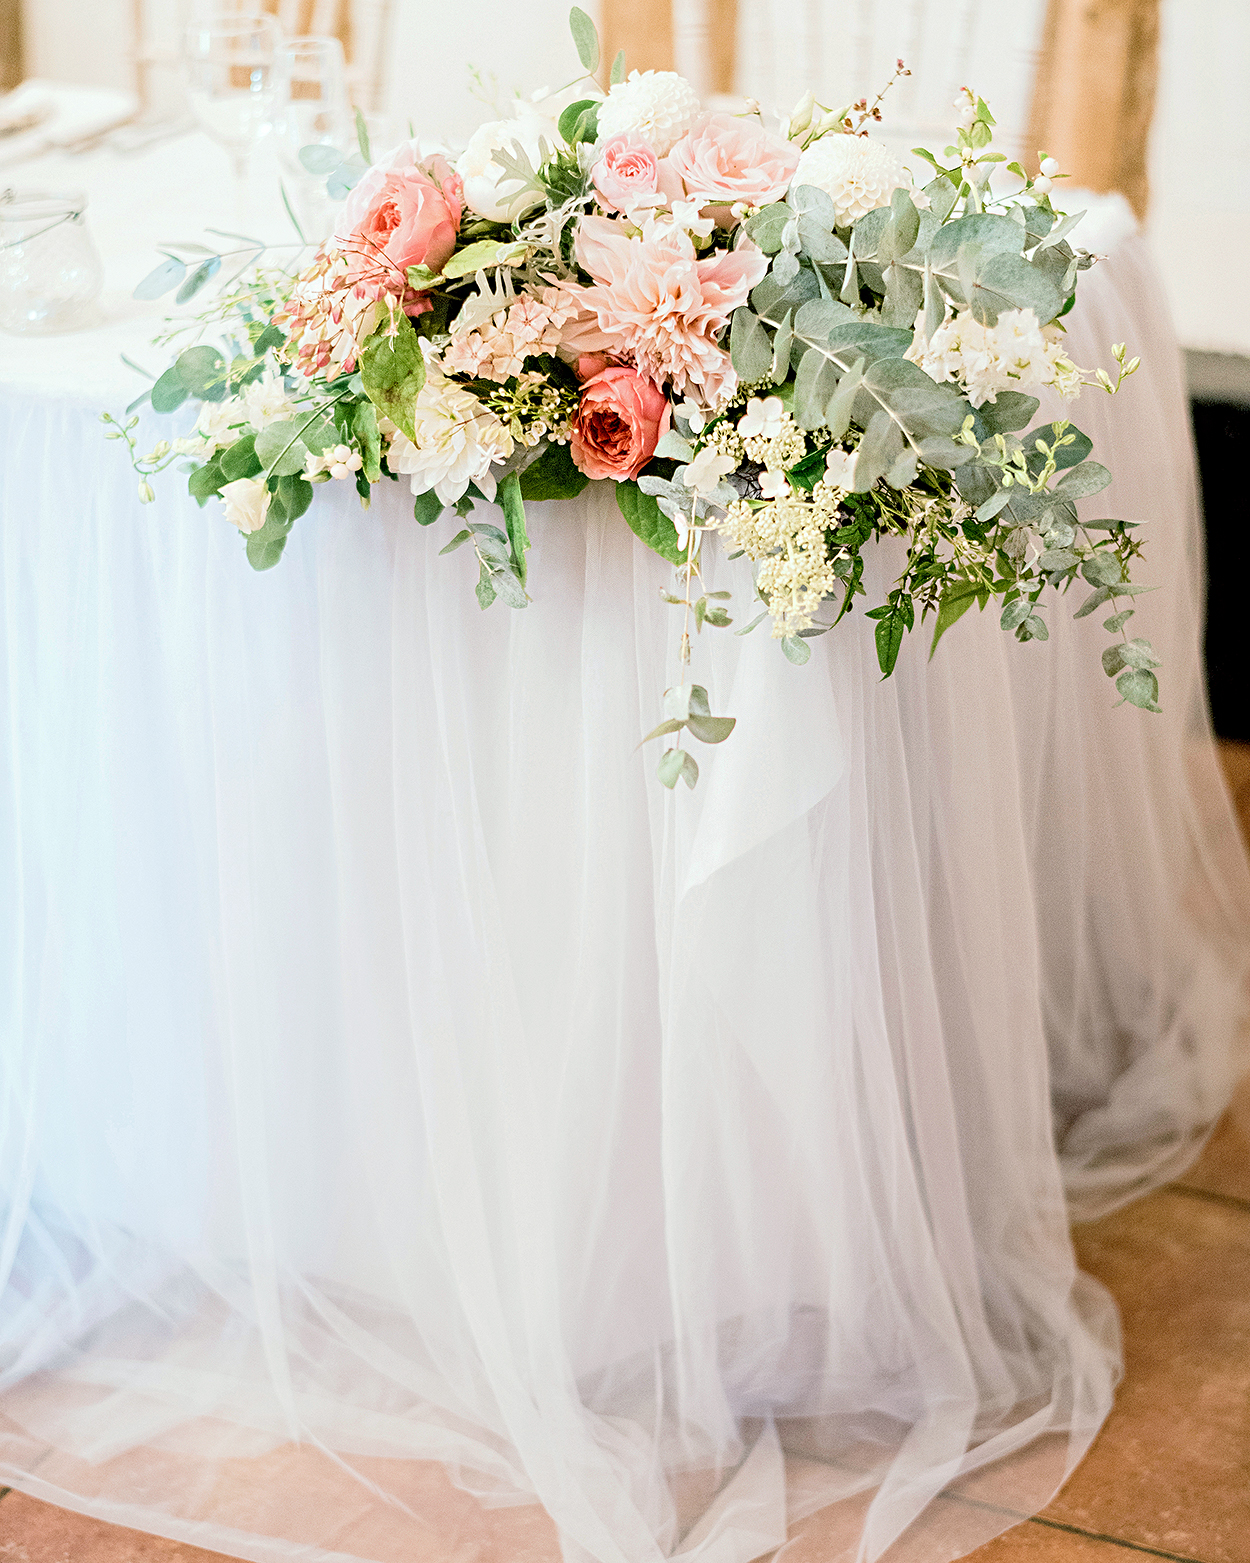 table topped with tulle overlay and lush florals